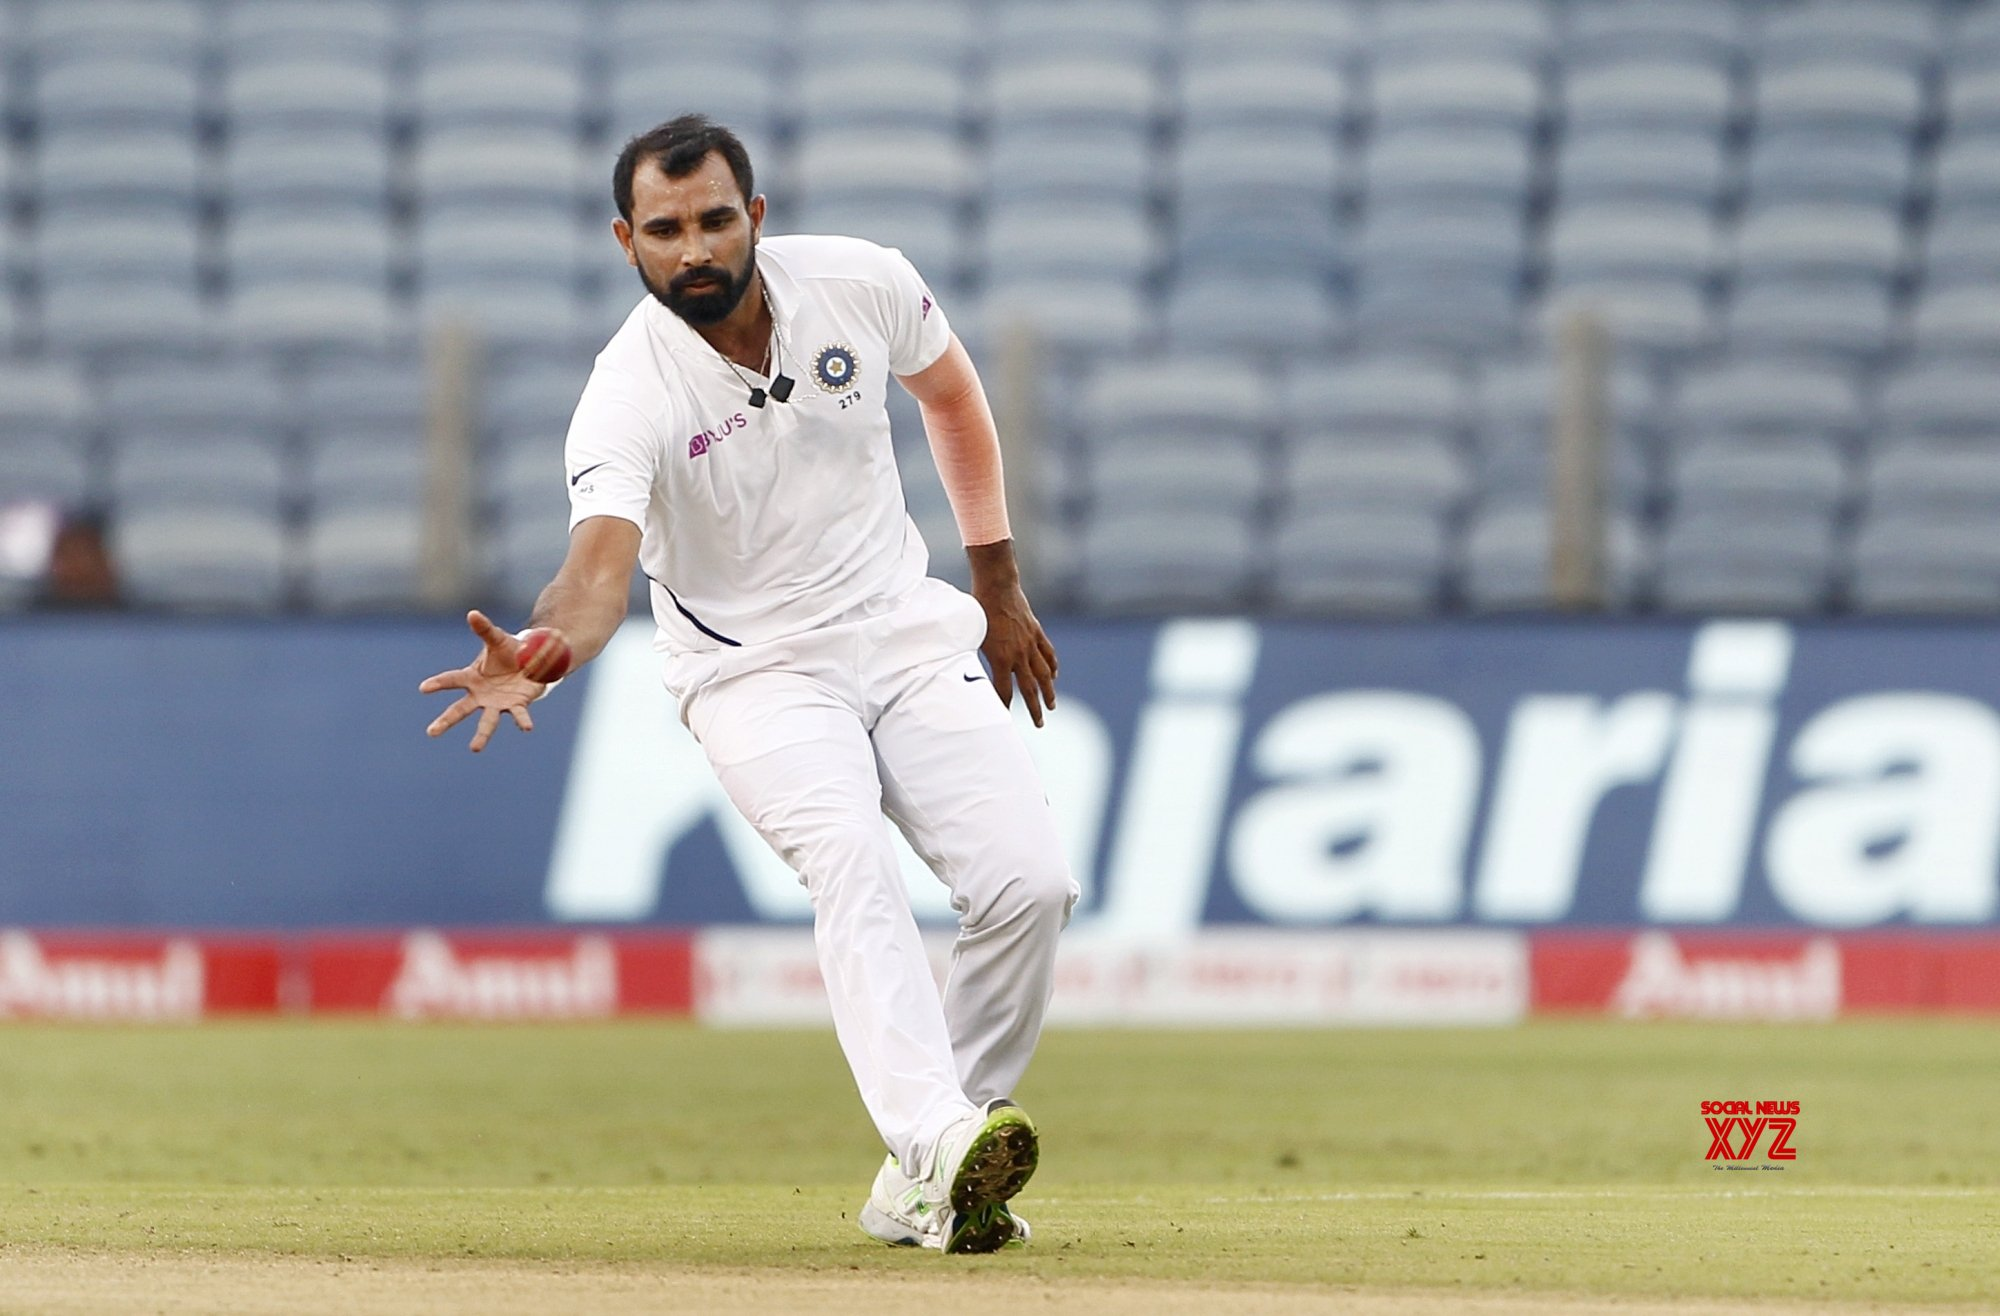 Pune: 2nd Test - India Vs South Africa - Day 2 (Batch - 24) #Gallery